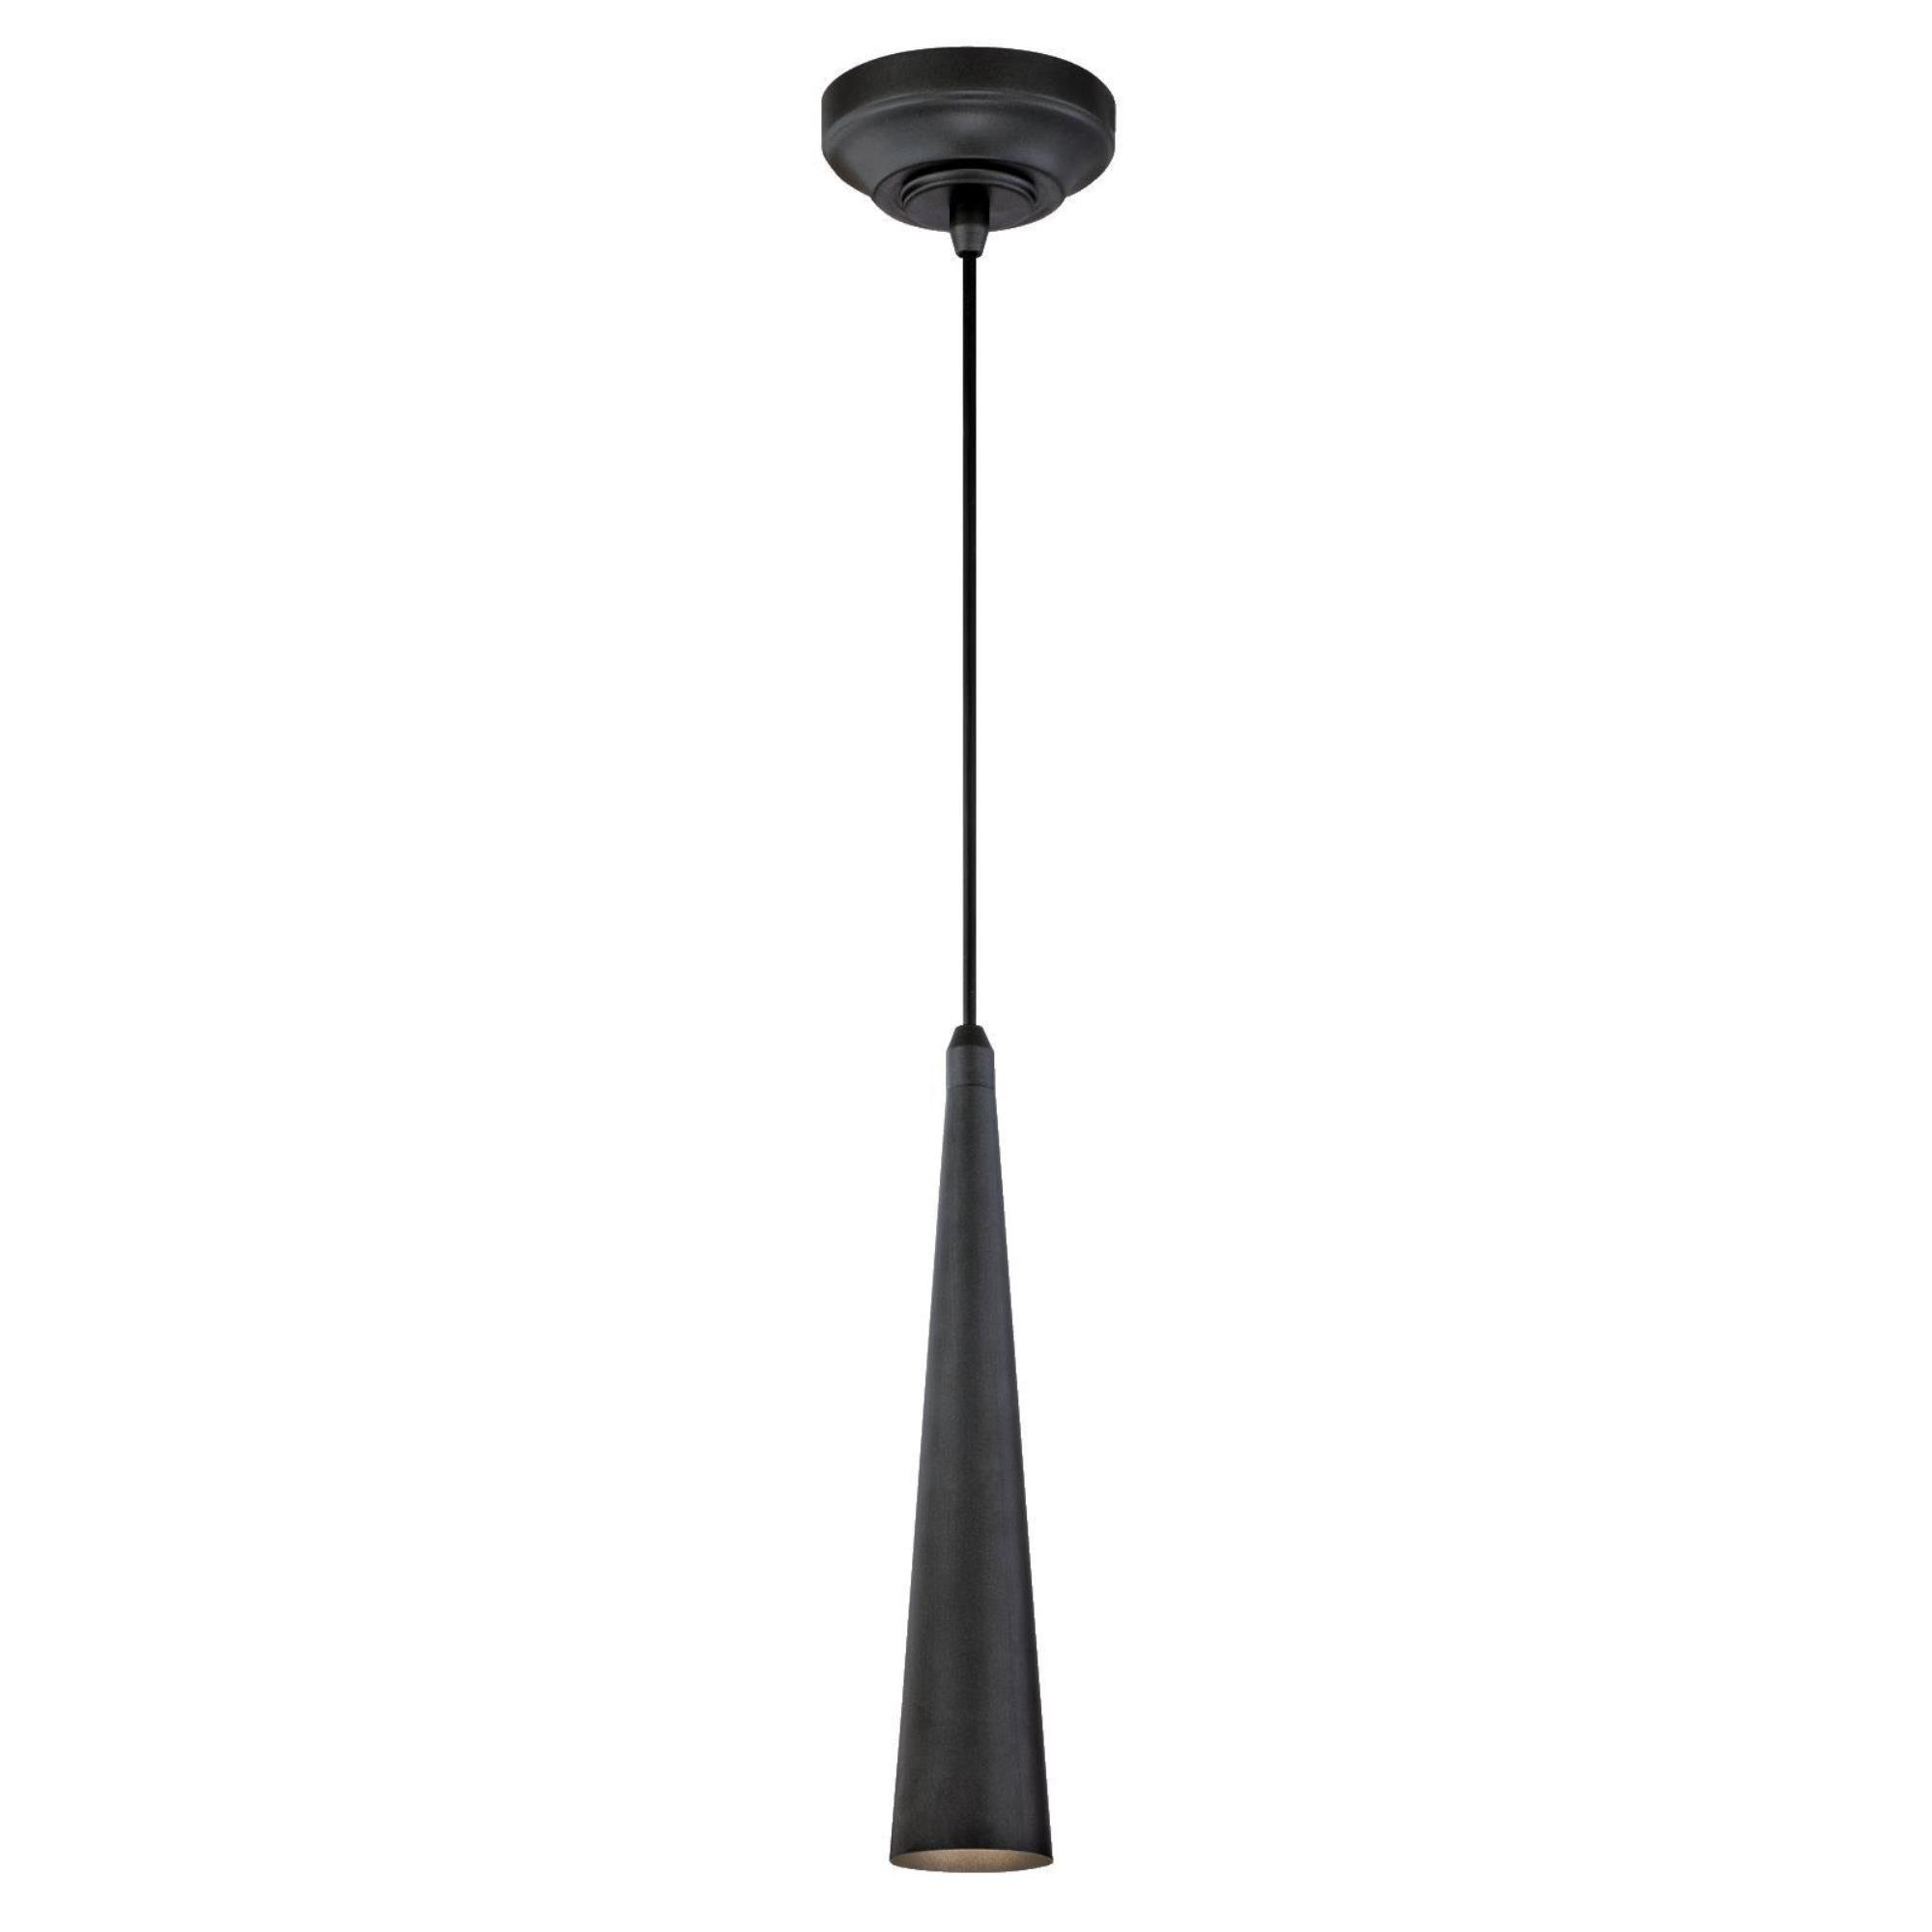 Westinghouse 6329600 One-Light LED Indoor Mini-Pendant, Matte Brushed Gun Finish with Metal Shade